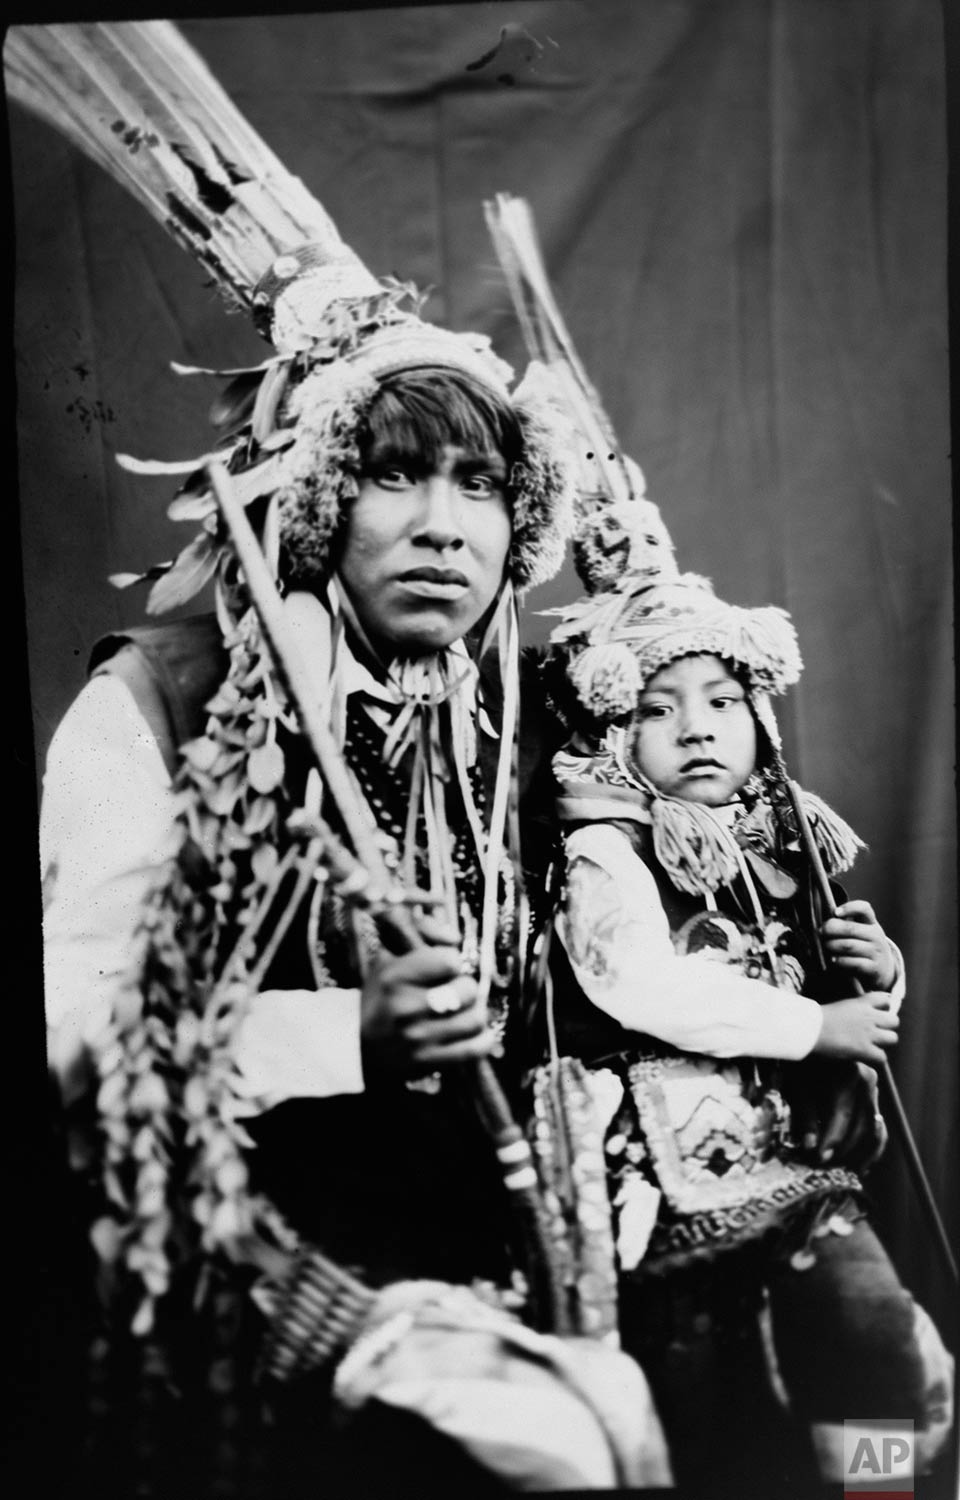 In this June 12, 2017 photo, Rudy Espiriya and his three-year-old son Dayiro Tahuara, pose for a portrait in the Sinakara Valley, in Peru's Cusco region, during the Qoyllur Rit'i festival, translated from the Quechua language as Snow Star. Rudy and Dayiro perform a dance called Paapuri Guayri as part of the Paucartambo nation. (AP Photo/Rodrigo Abd)